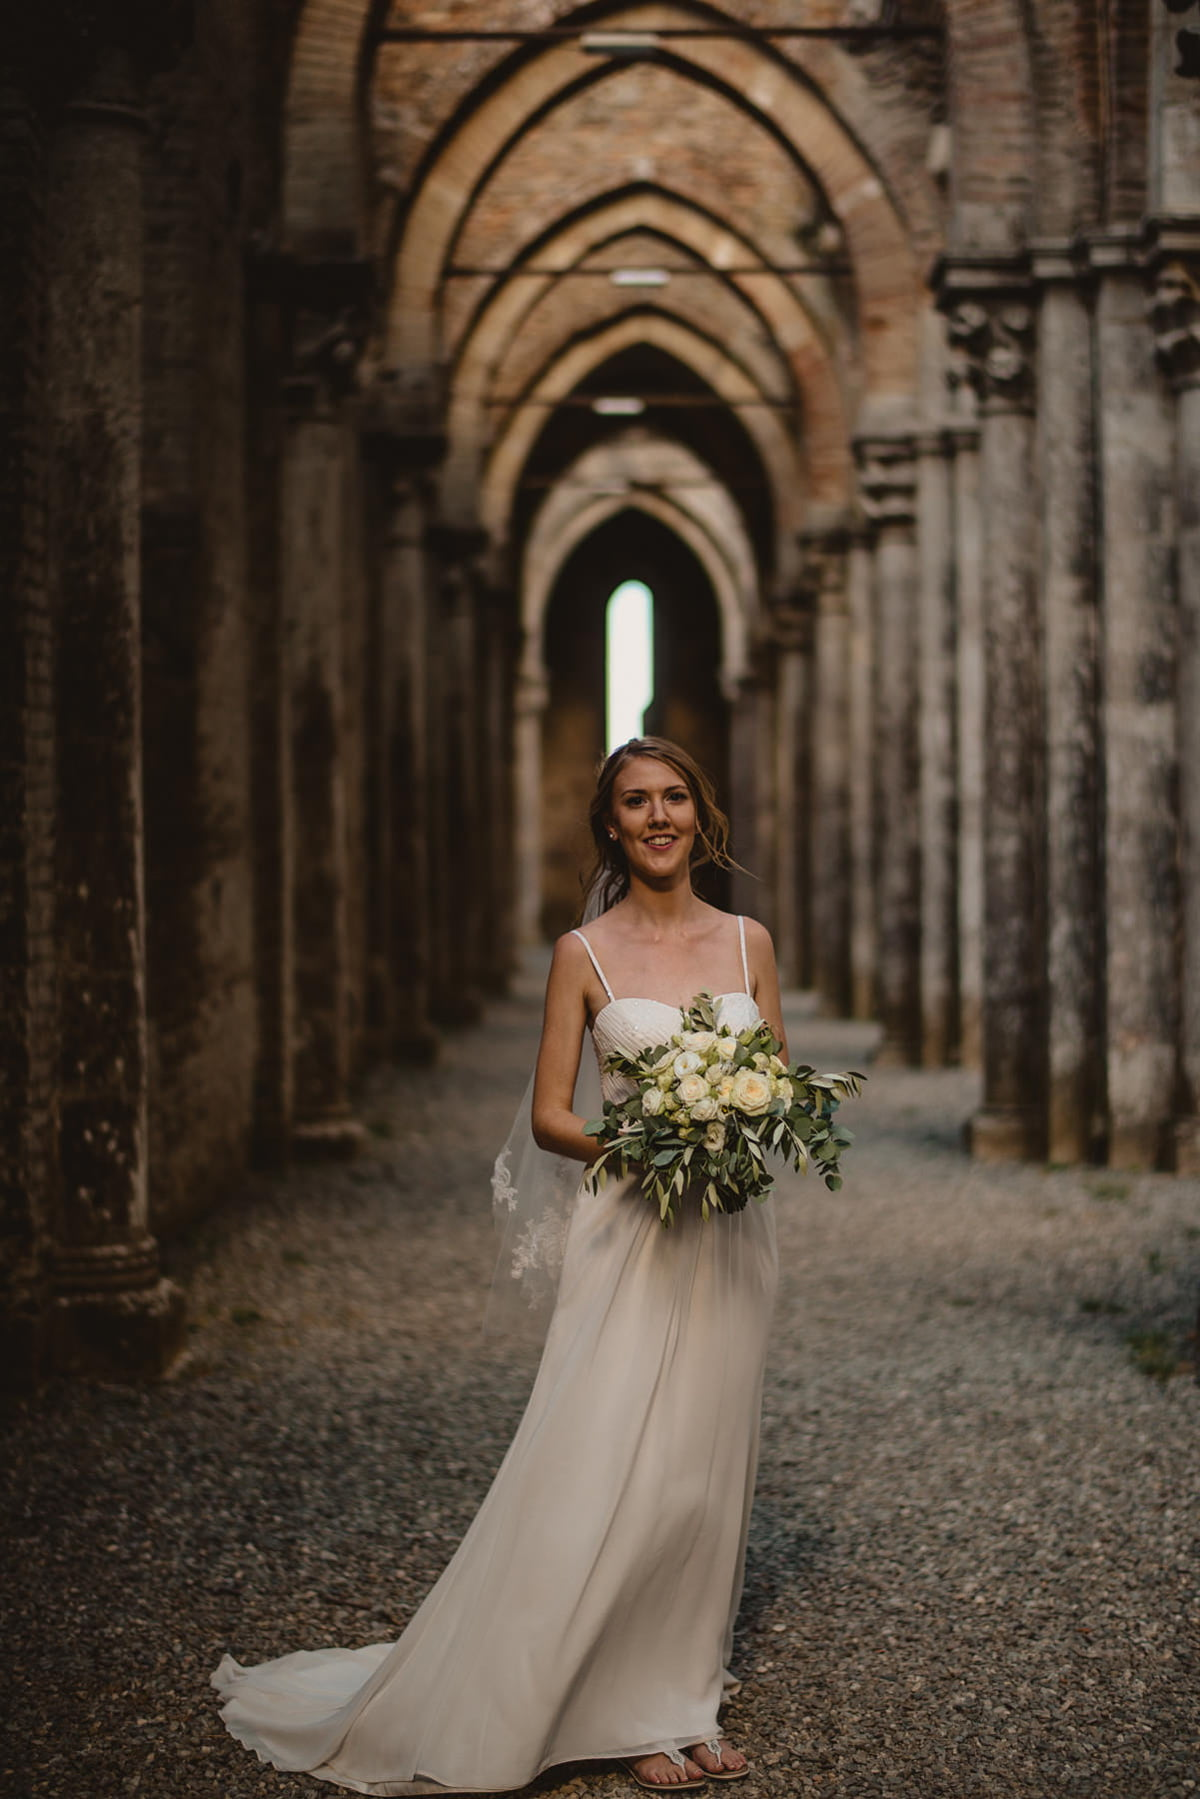 070-Romatic-Wedding-San-Galgano-by-Federico-Pannacci-photography